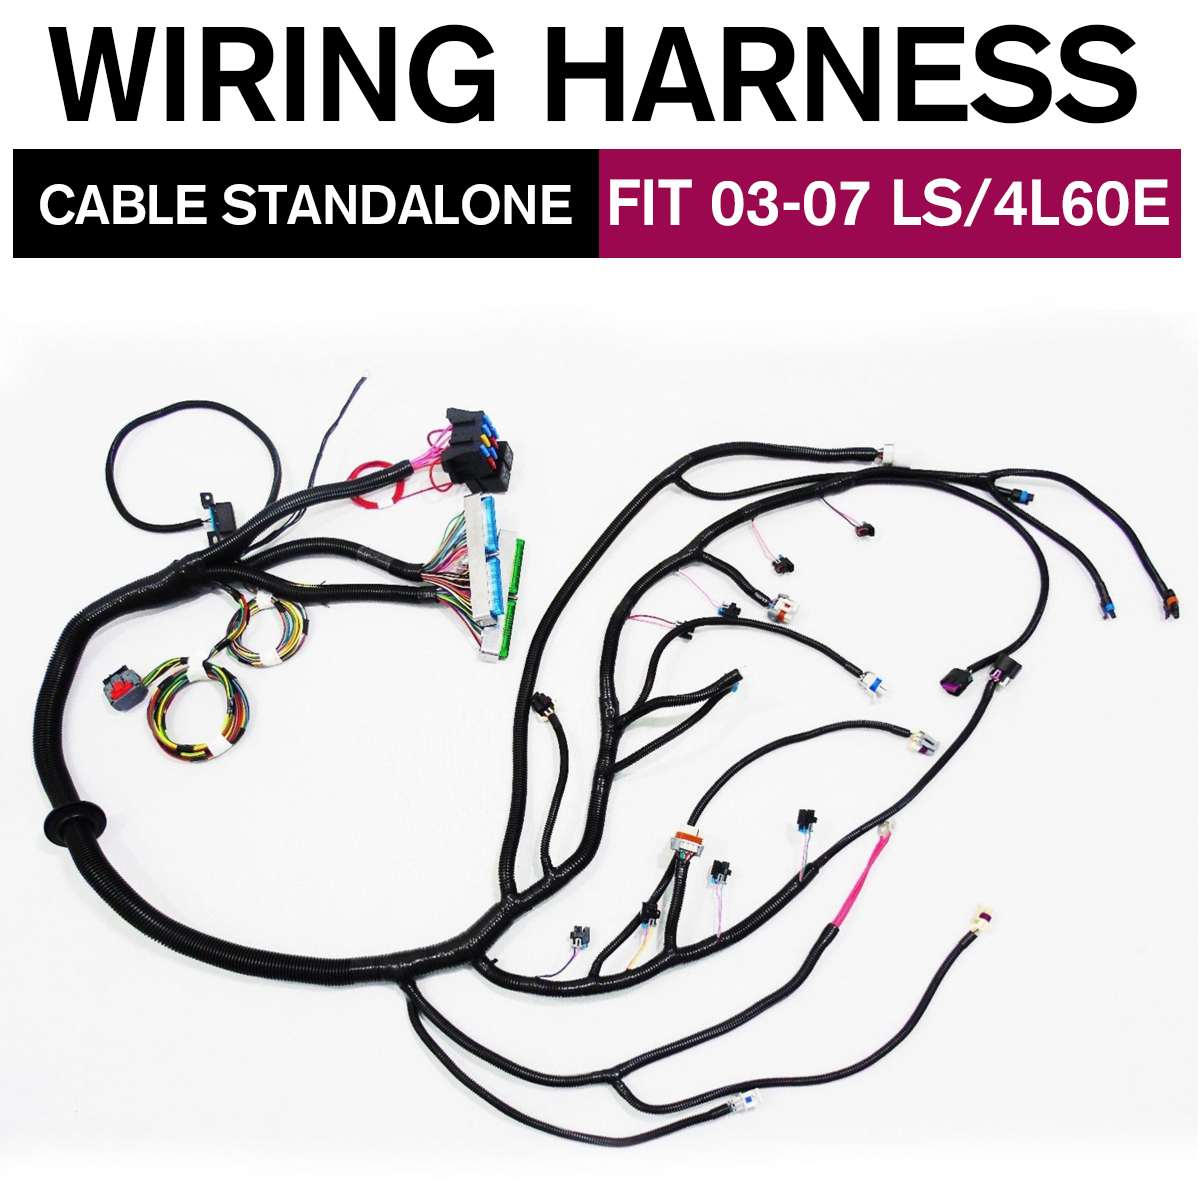 ls1 wiring harness diagram 03 07 97 06 engines vortec standalone ls2 dbc ls1 wiring harness w  ls2 dbc ls1 wiring harness